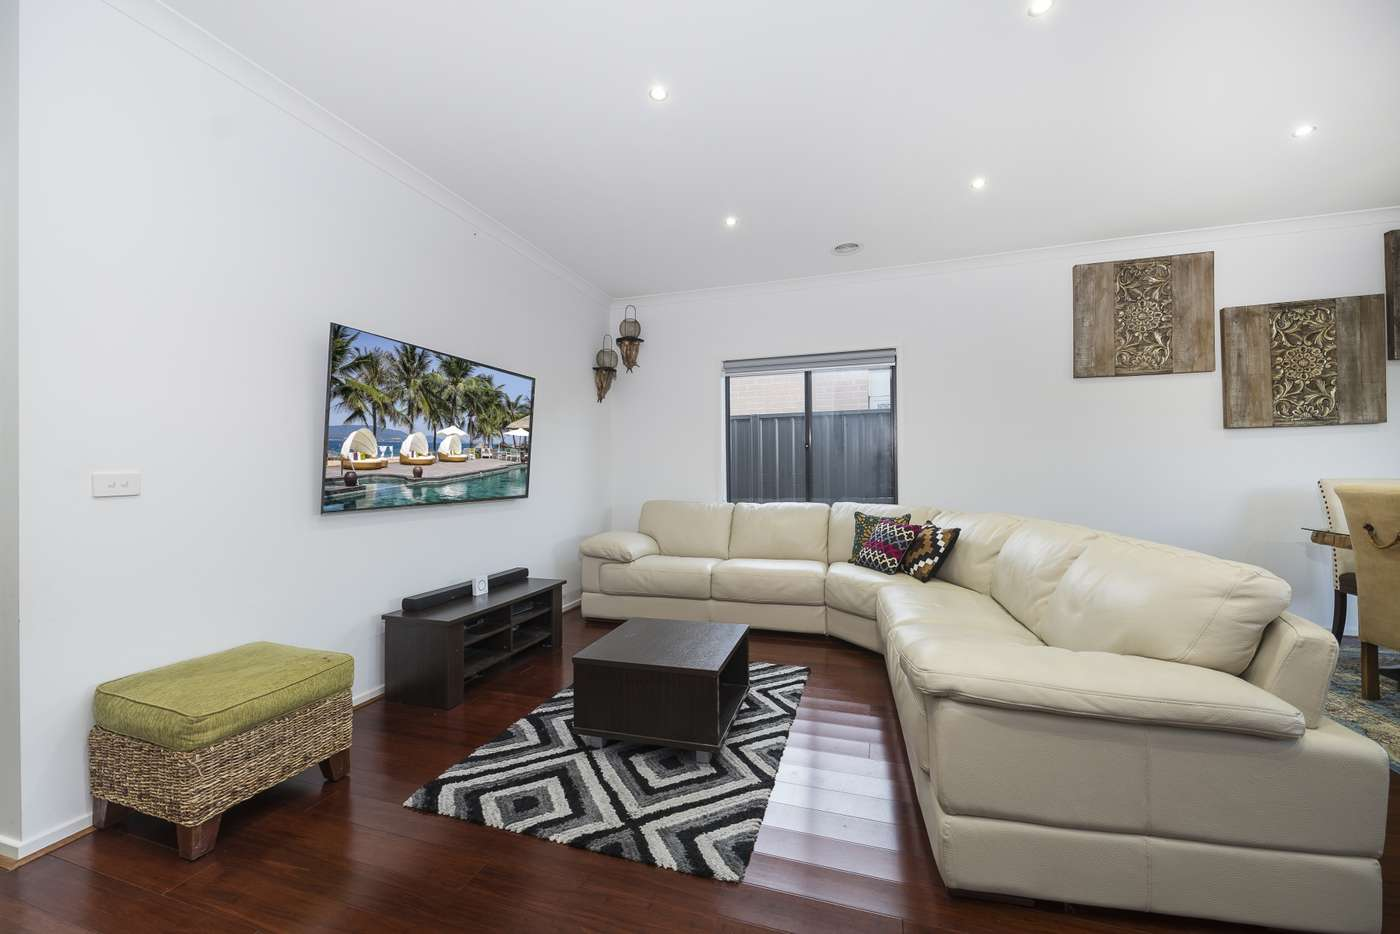 Seventh view of Homely house listing, 27 Observation Way, Roxburgh Park VIC 3064